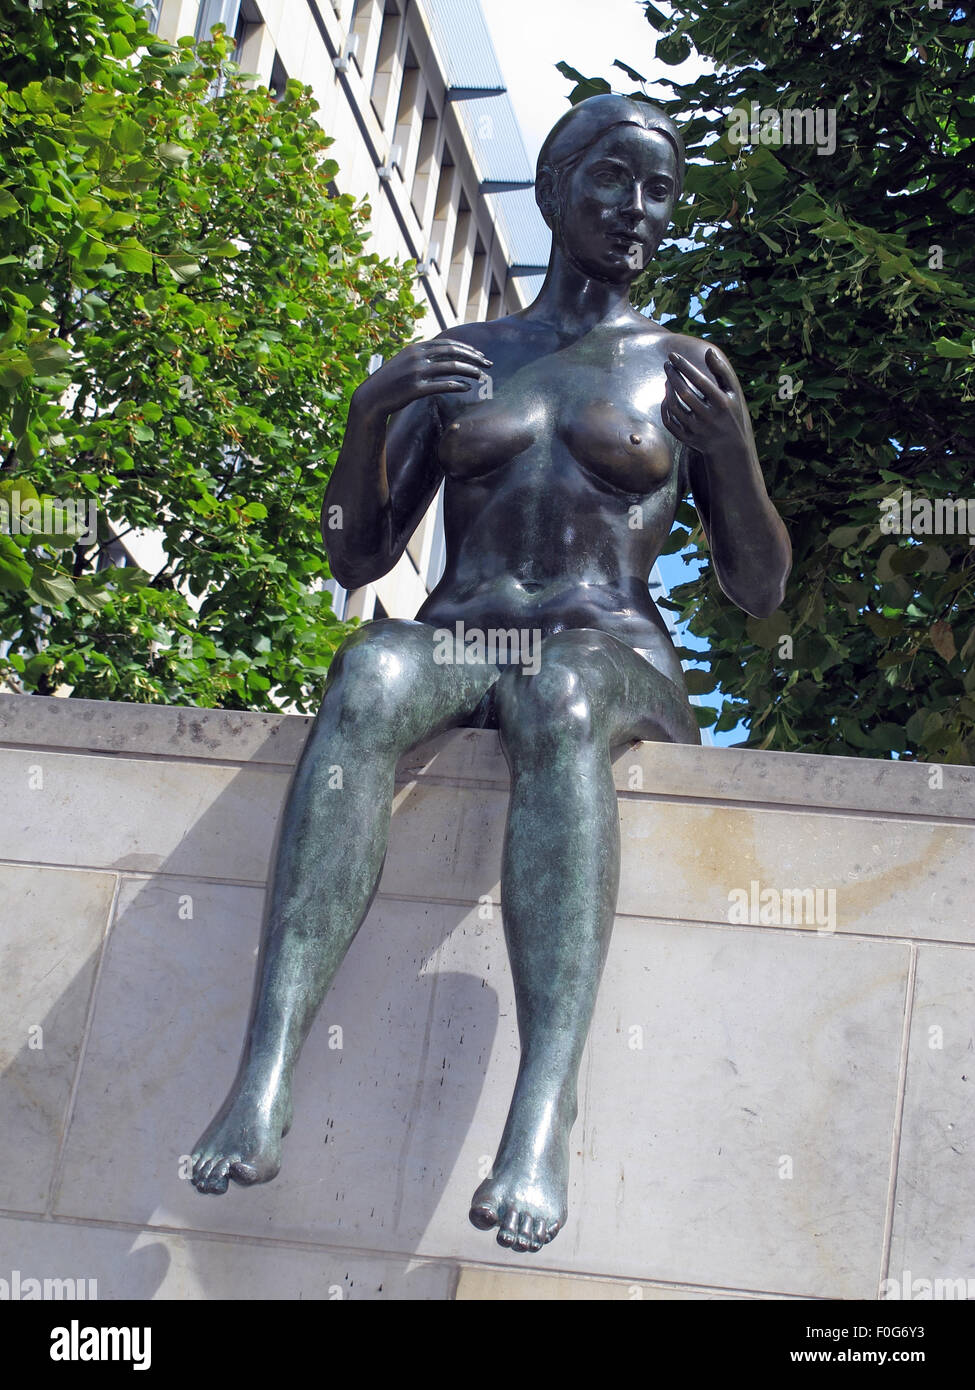 3,Statue,by,the,Spree,River,Moabit,Berlin,Germany,bronze,bank,side,of,art,artist,public,publicart,German,sculptor,DomAquarée,DomAquaree,summer,sunny,bright,city,cities,culture,with,building,behind,GoTonySmith,Buy Pictures of,Buy Images Of